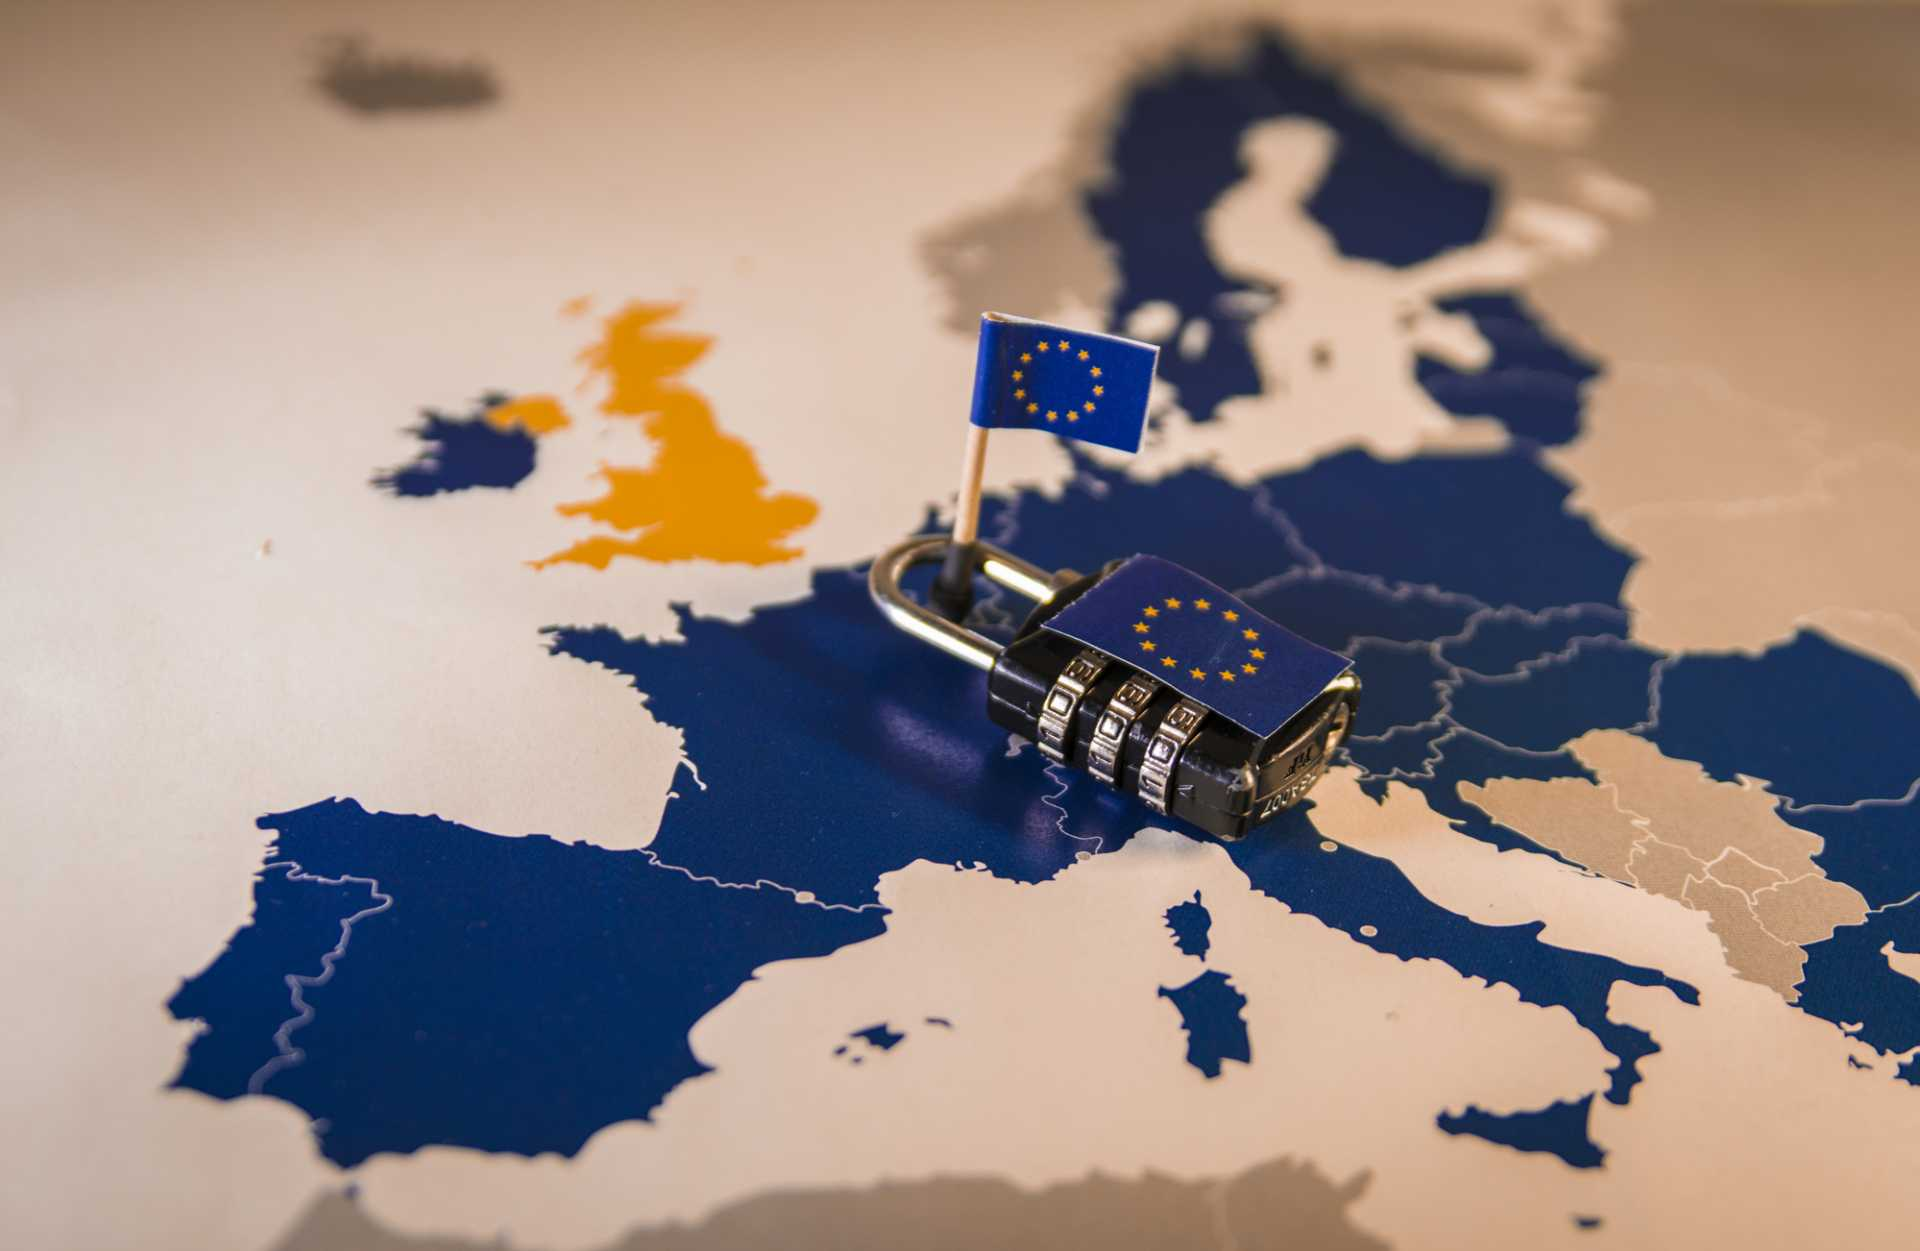 Brexit will not affect GDPR as it will apply directly in the UK before we leave the EU - image courtesy of Depositphotos.